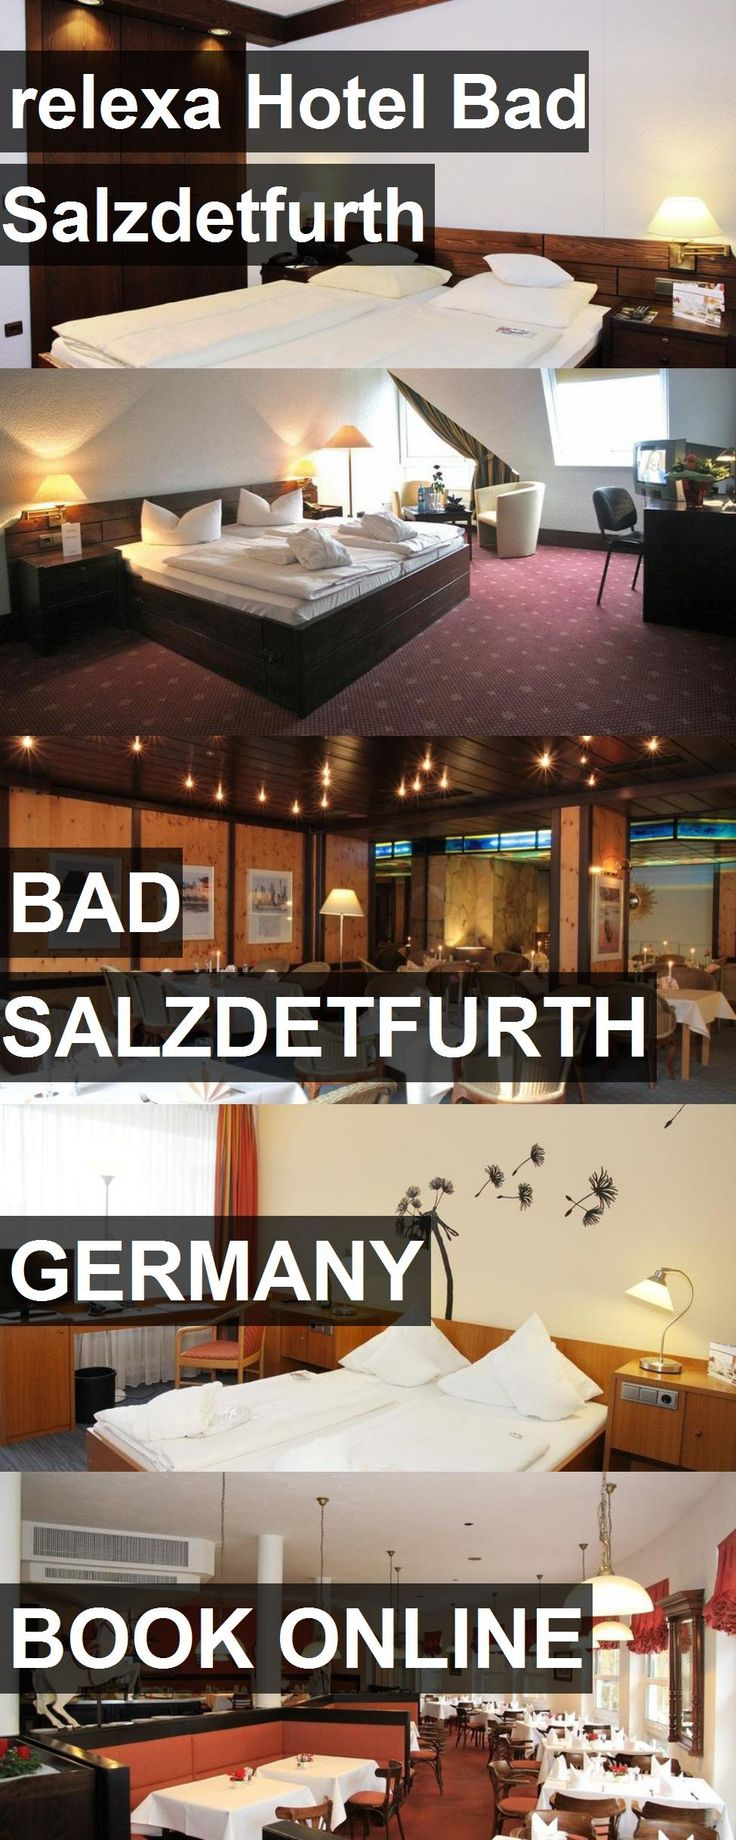 relexa Hotel Bad Salzdetfurth in Bad Salzdetfurth, Germany. For more information, photos, reviews and best prices please follow the link. #Germany #BadSalzdetfurth #travel #vacation #hotel